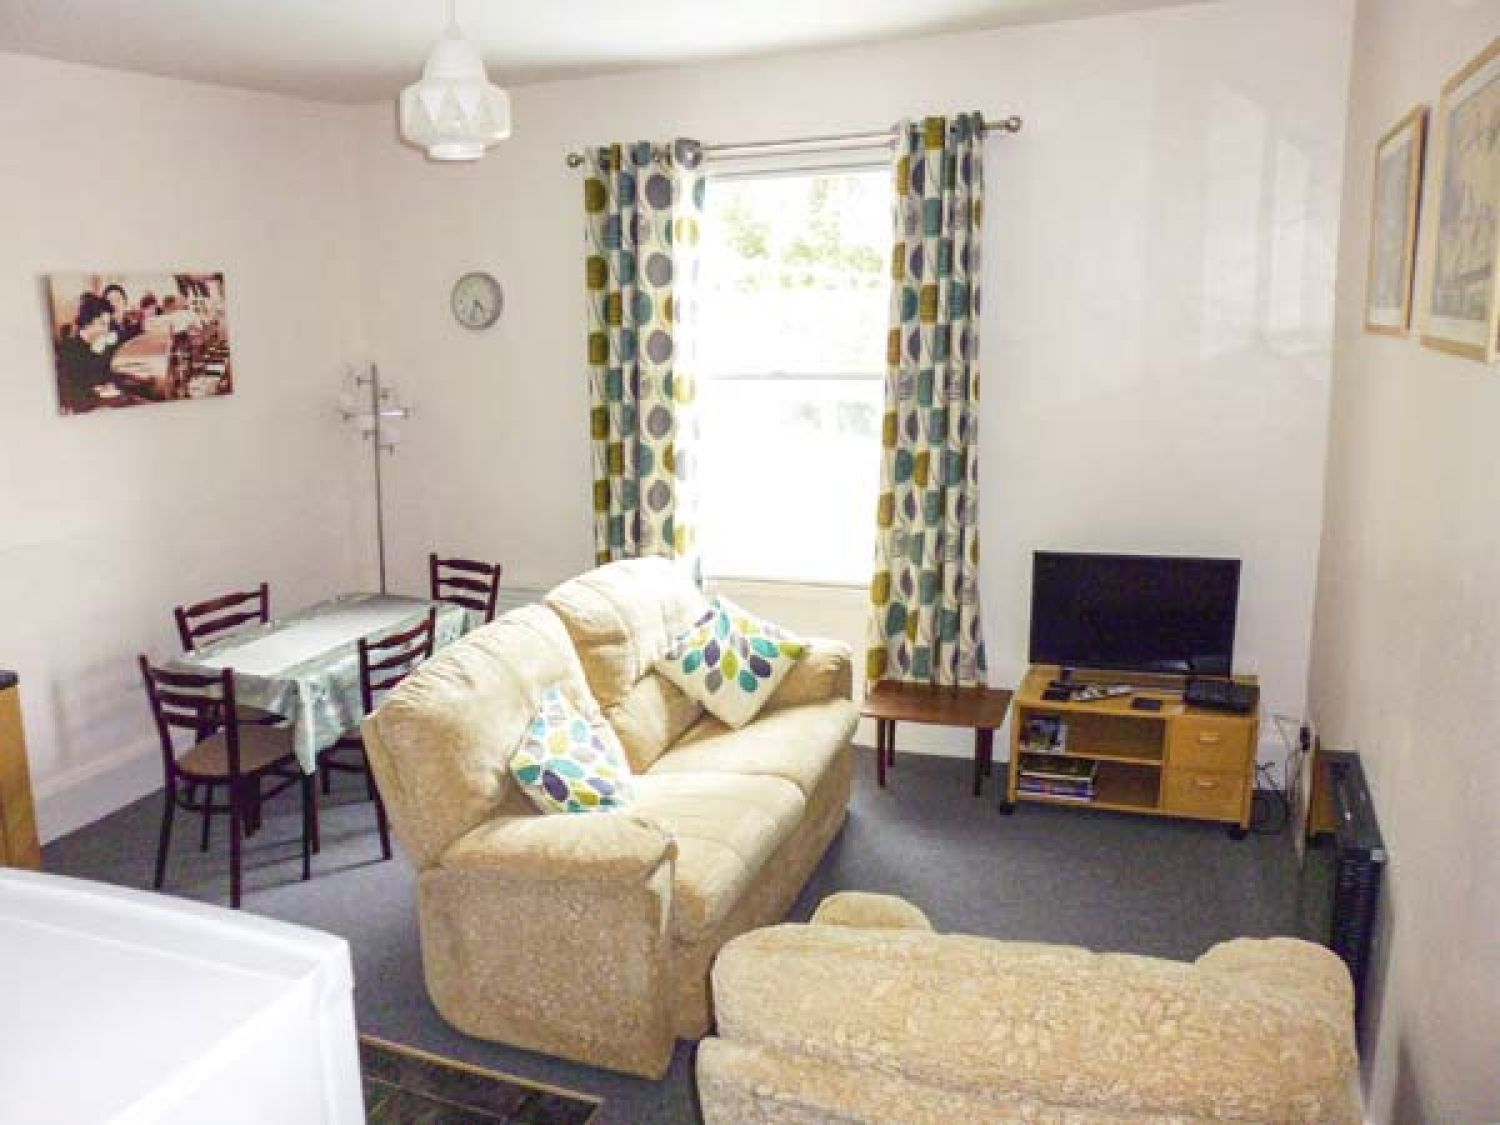 Harley Apartment - Shropshire - 940775 - photo 1